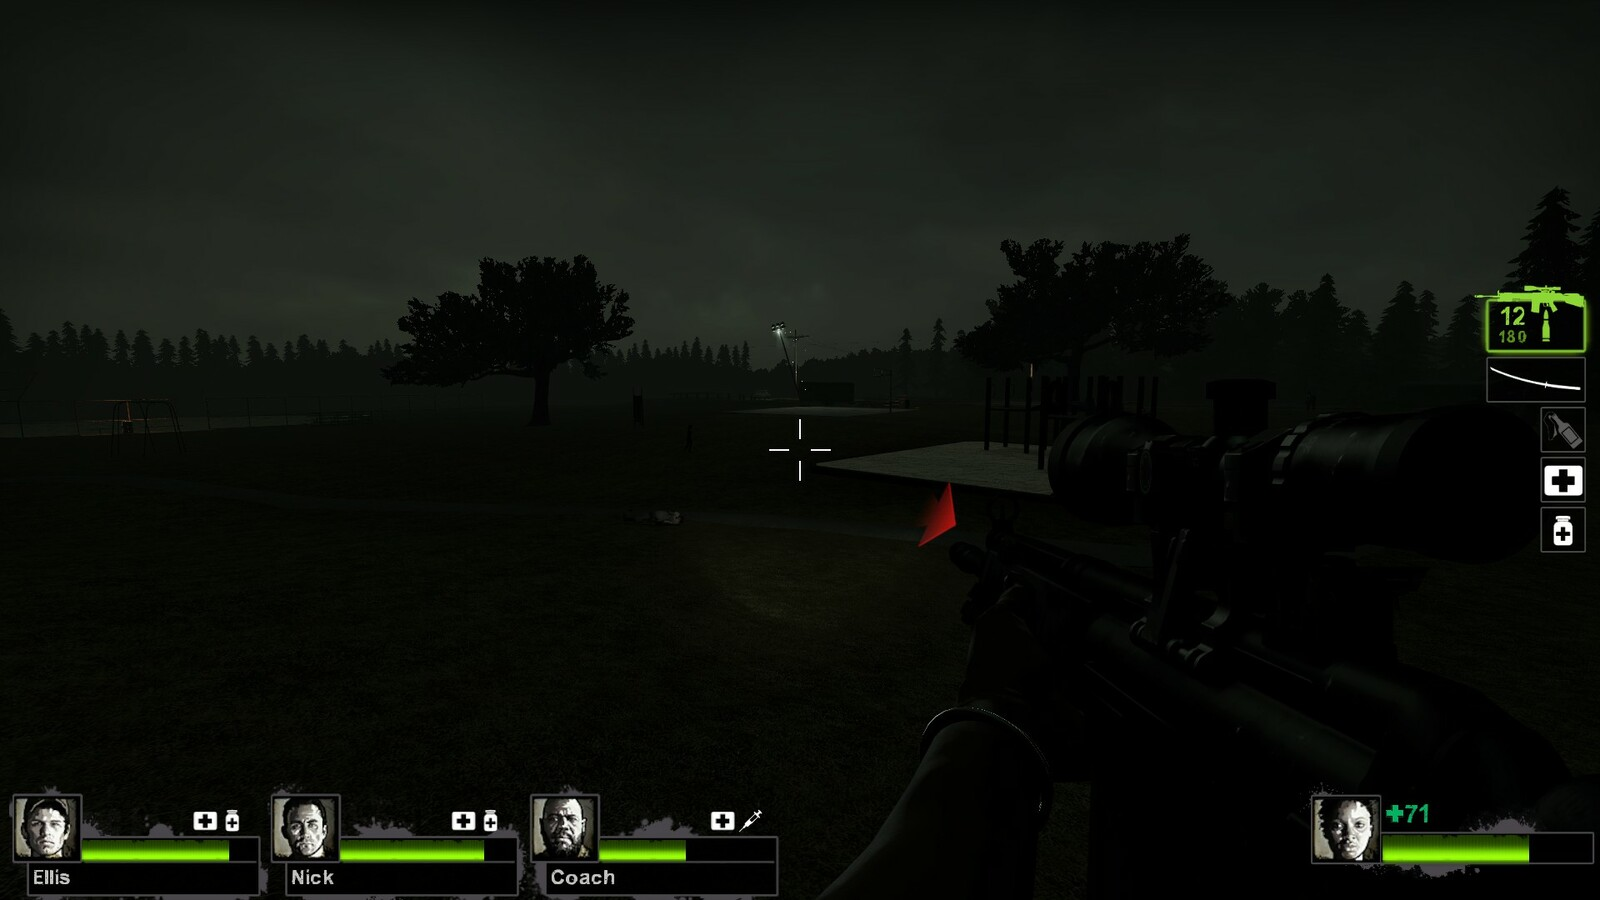 Light in the distance, directing players to the basketball court where they will find a military truck with a radio to call for help.